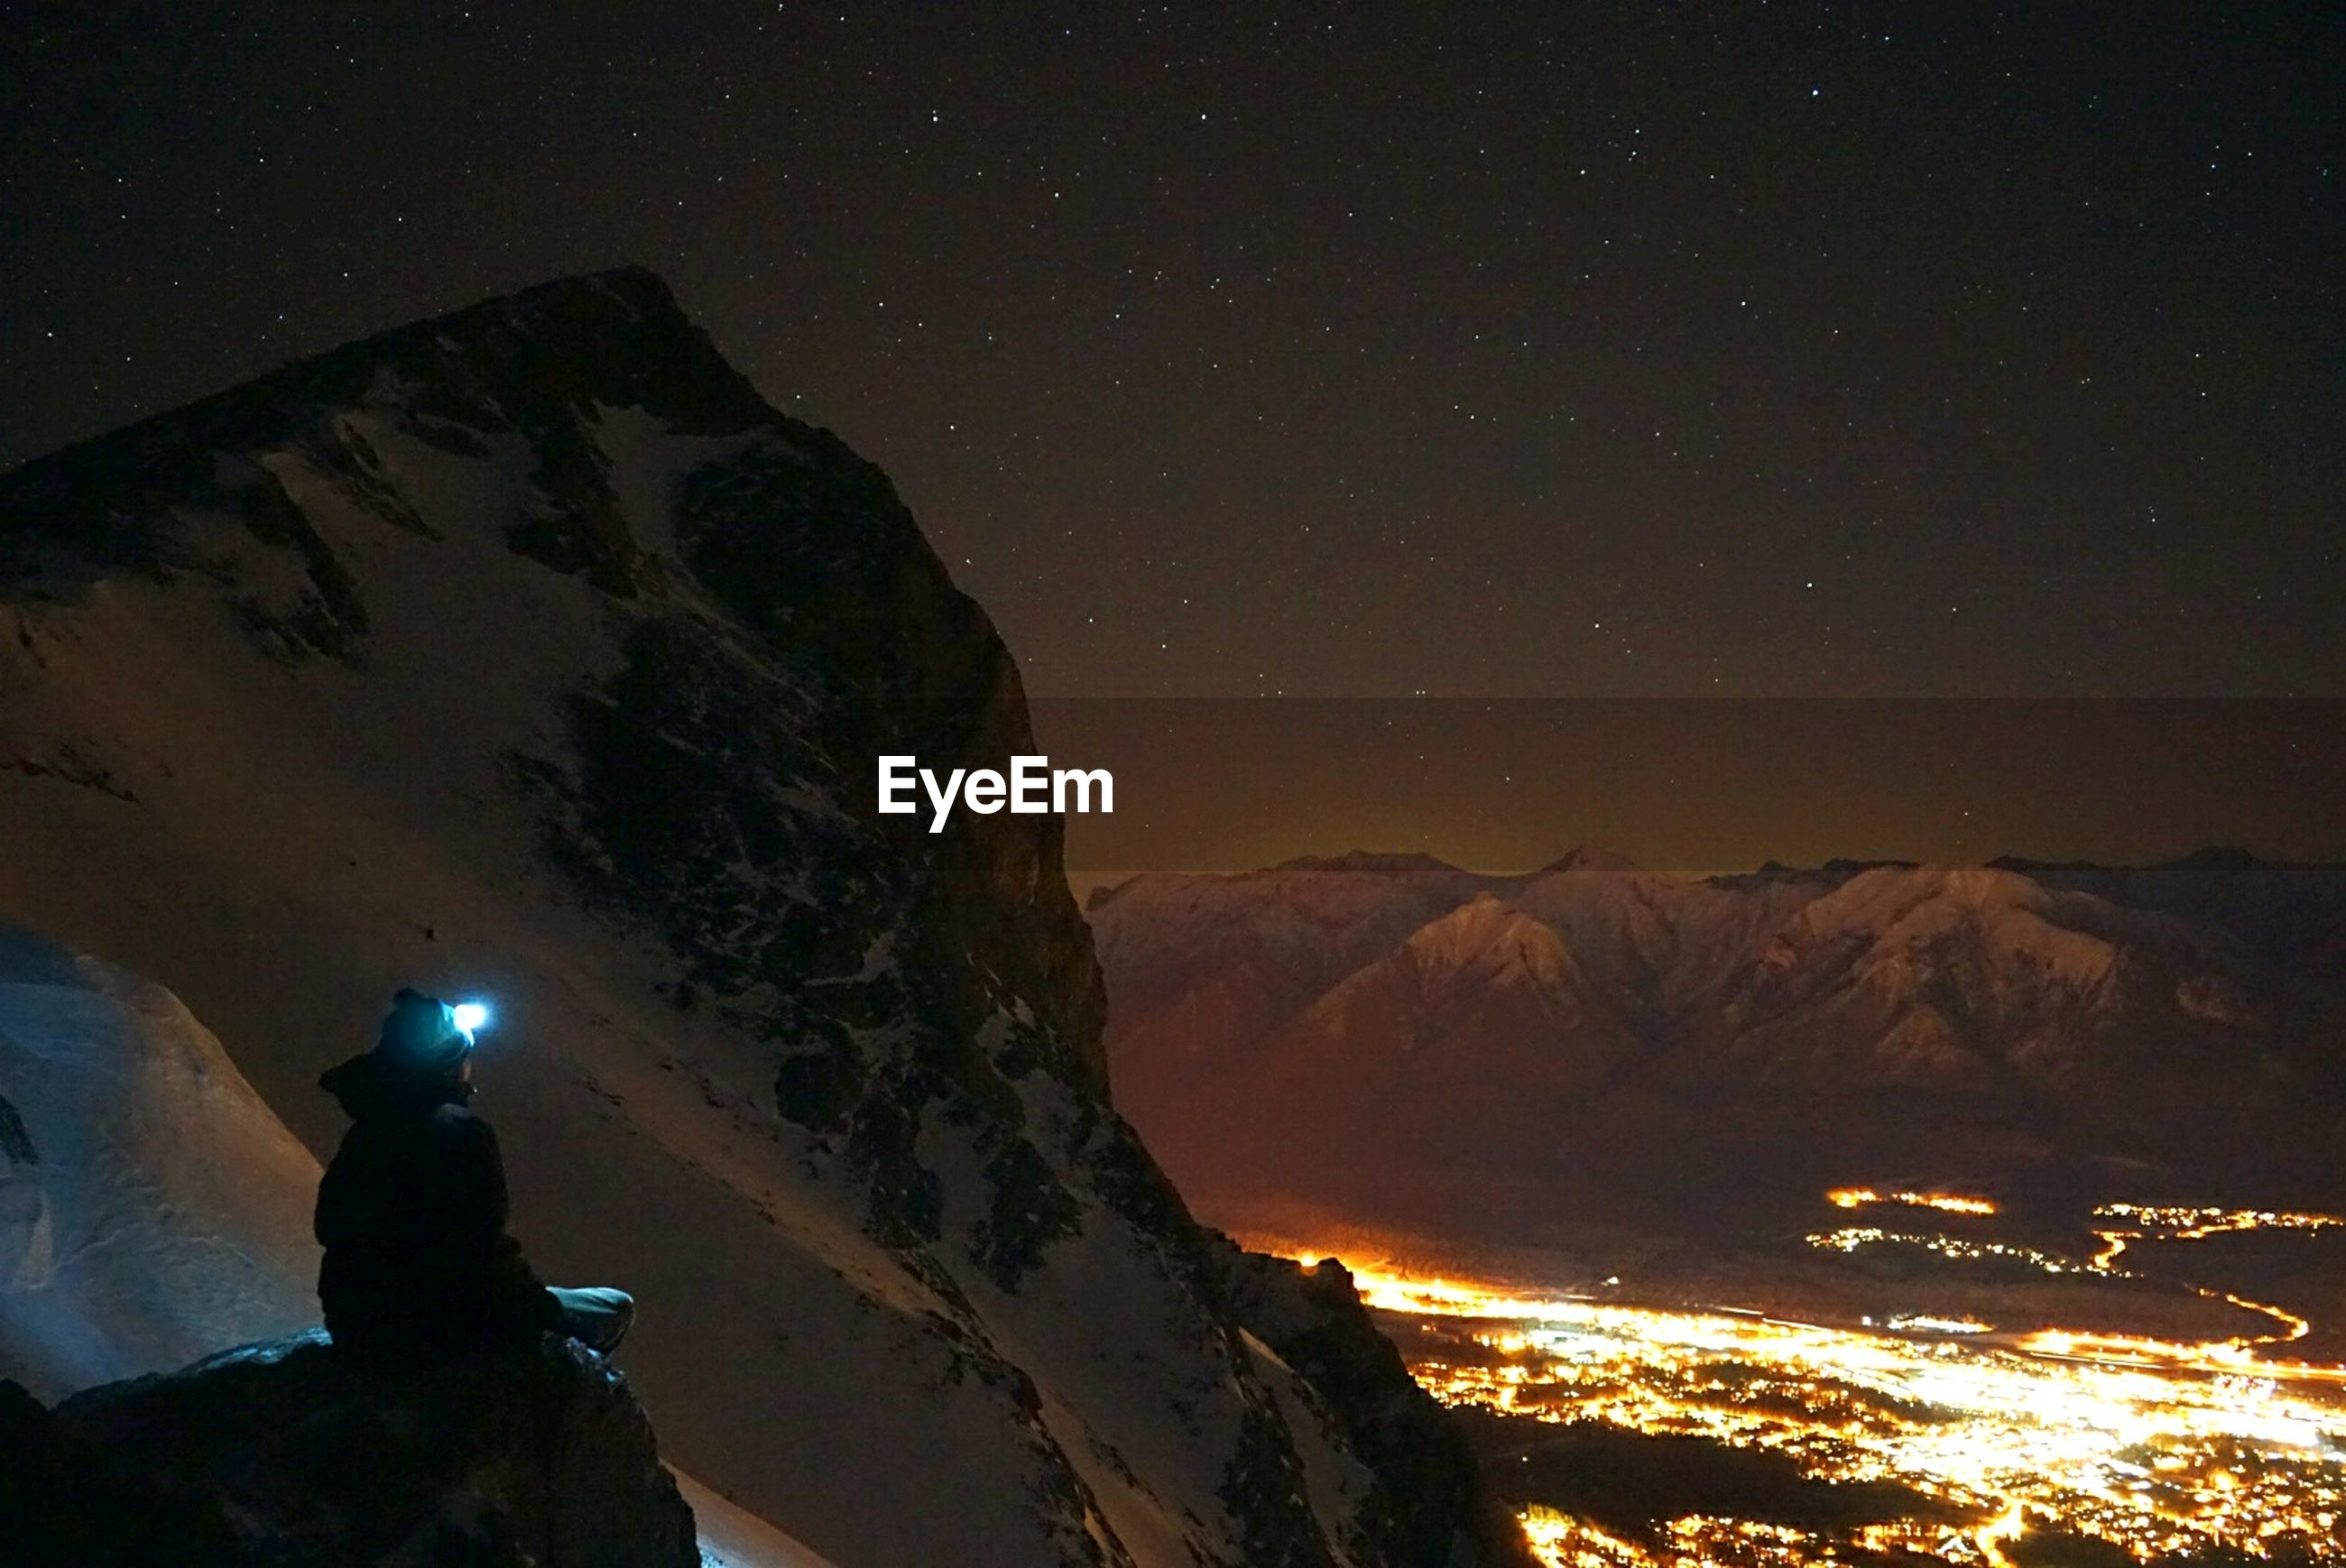 mountain, night, mountain range, scenics, snow, tranquil scene, tranquility, beauty in nature, winter, sky, landscape, illuminated, cold temperature, nature, rock formation, clear sky, silhouette, exploration, idyllic, physical geography